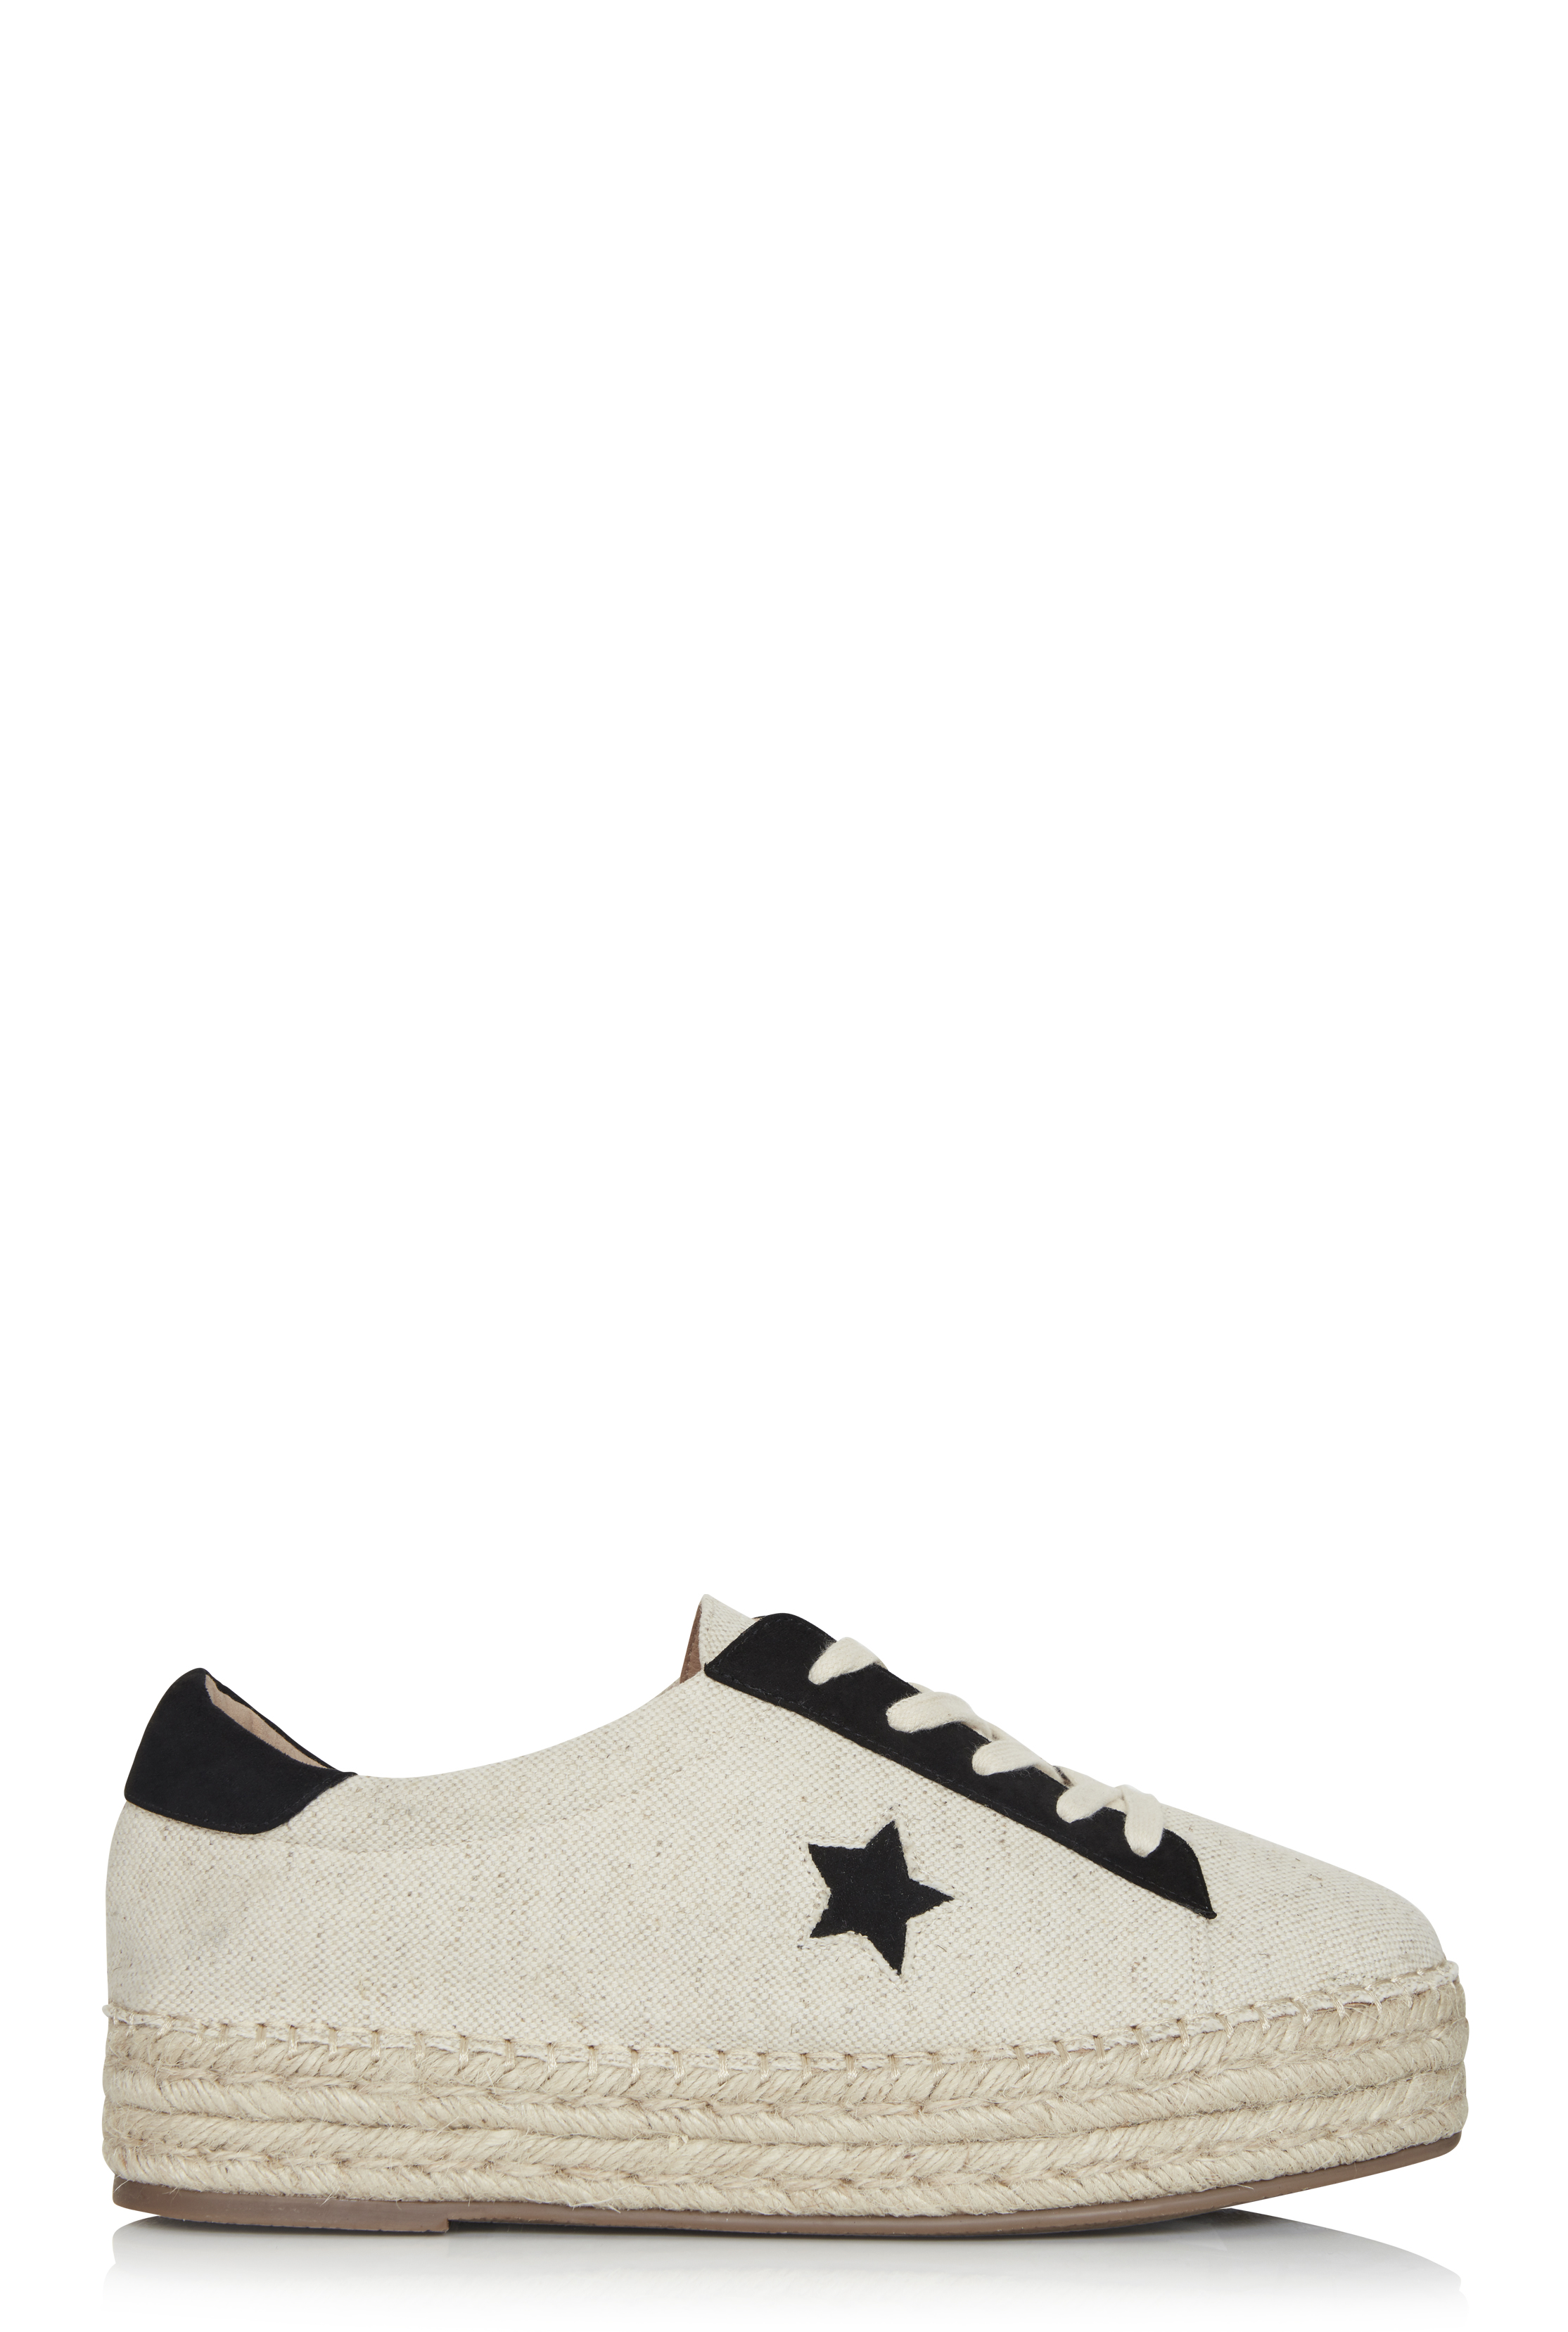 LTS Keziah Lace Up Espadrille